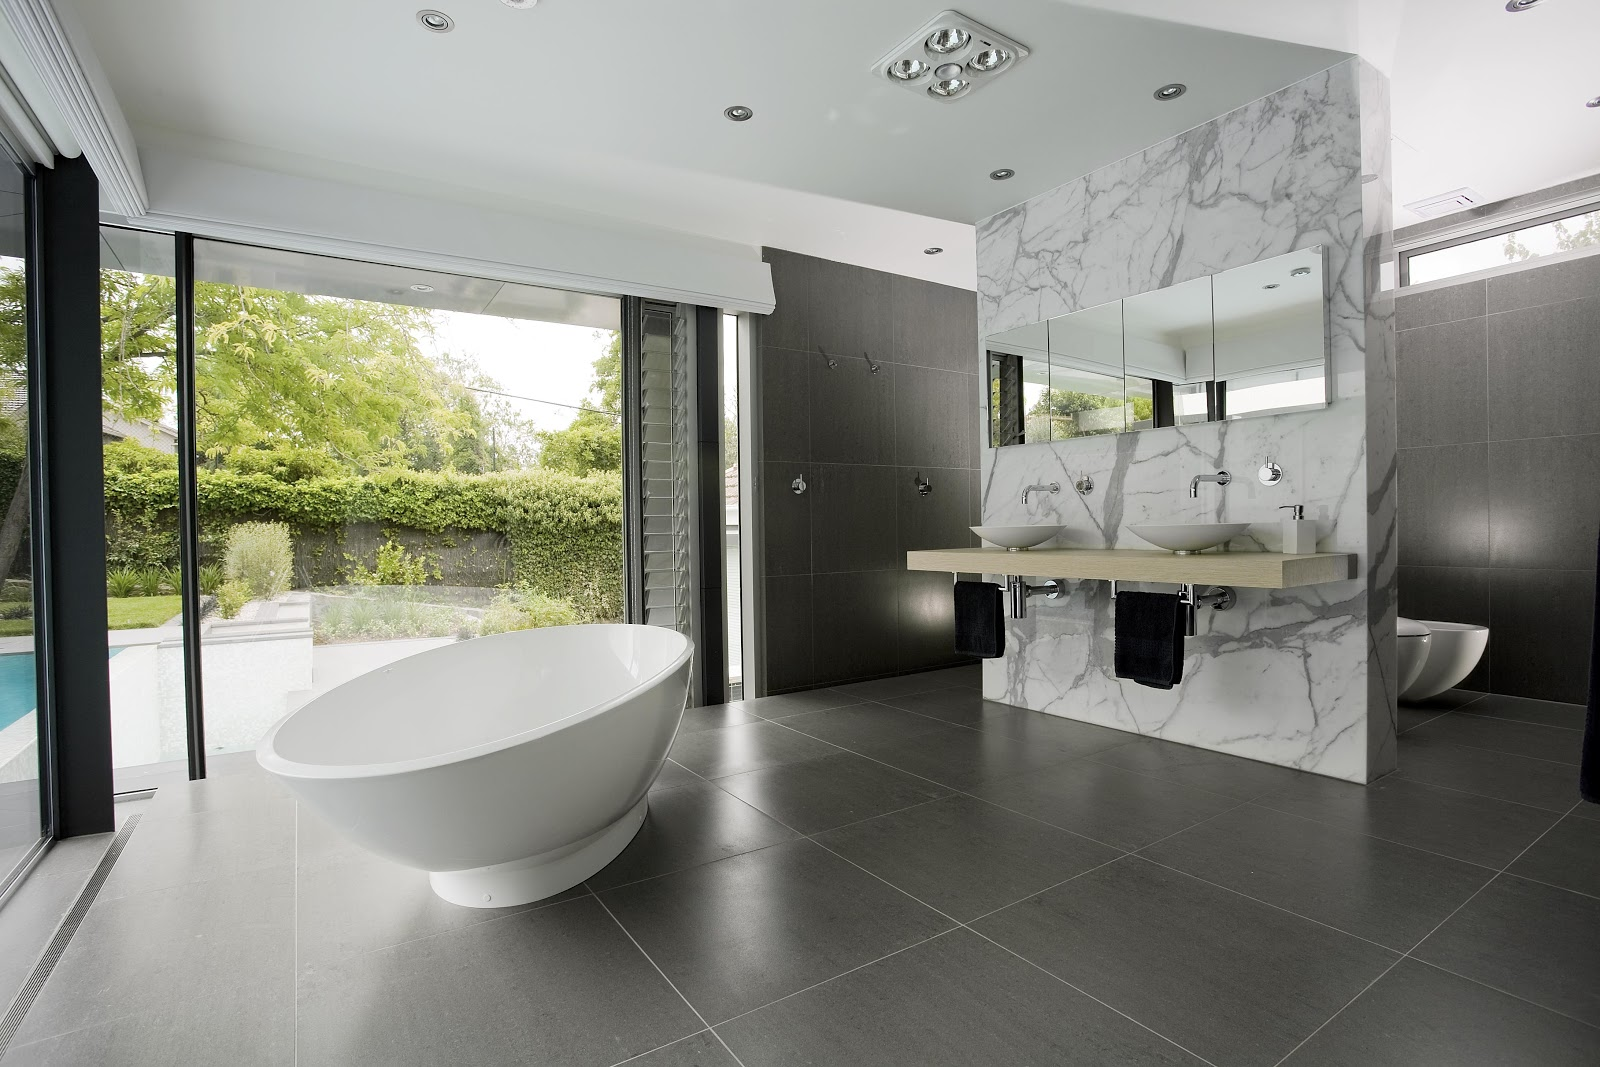 Minosa modern bathrooms the search for something different - Modern bathroom images ...